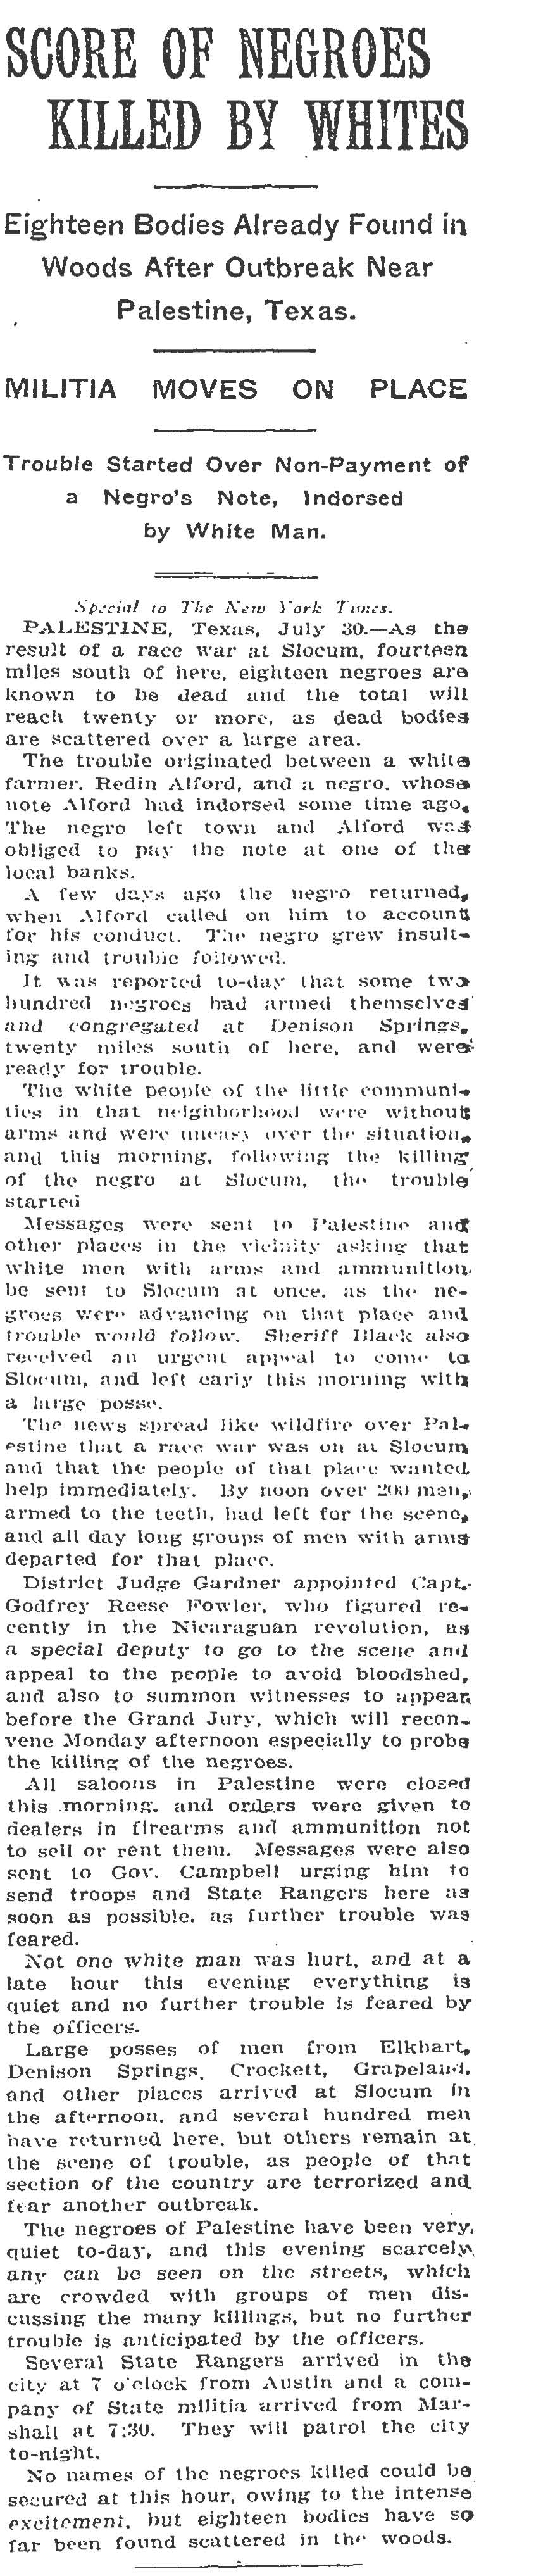 """Scores of Negroes Killed by Whites"" July 31, 1910 (Page 1) (New York Times)"